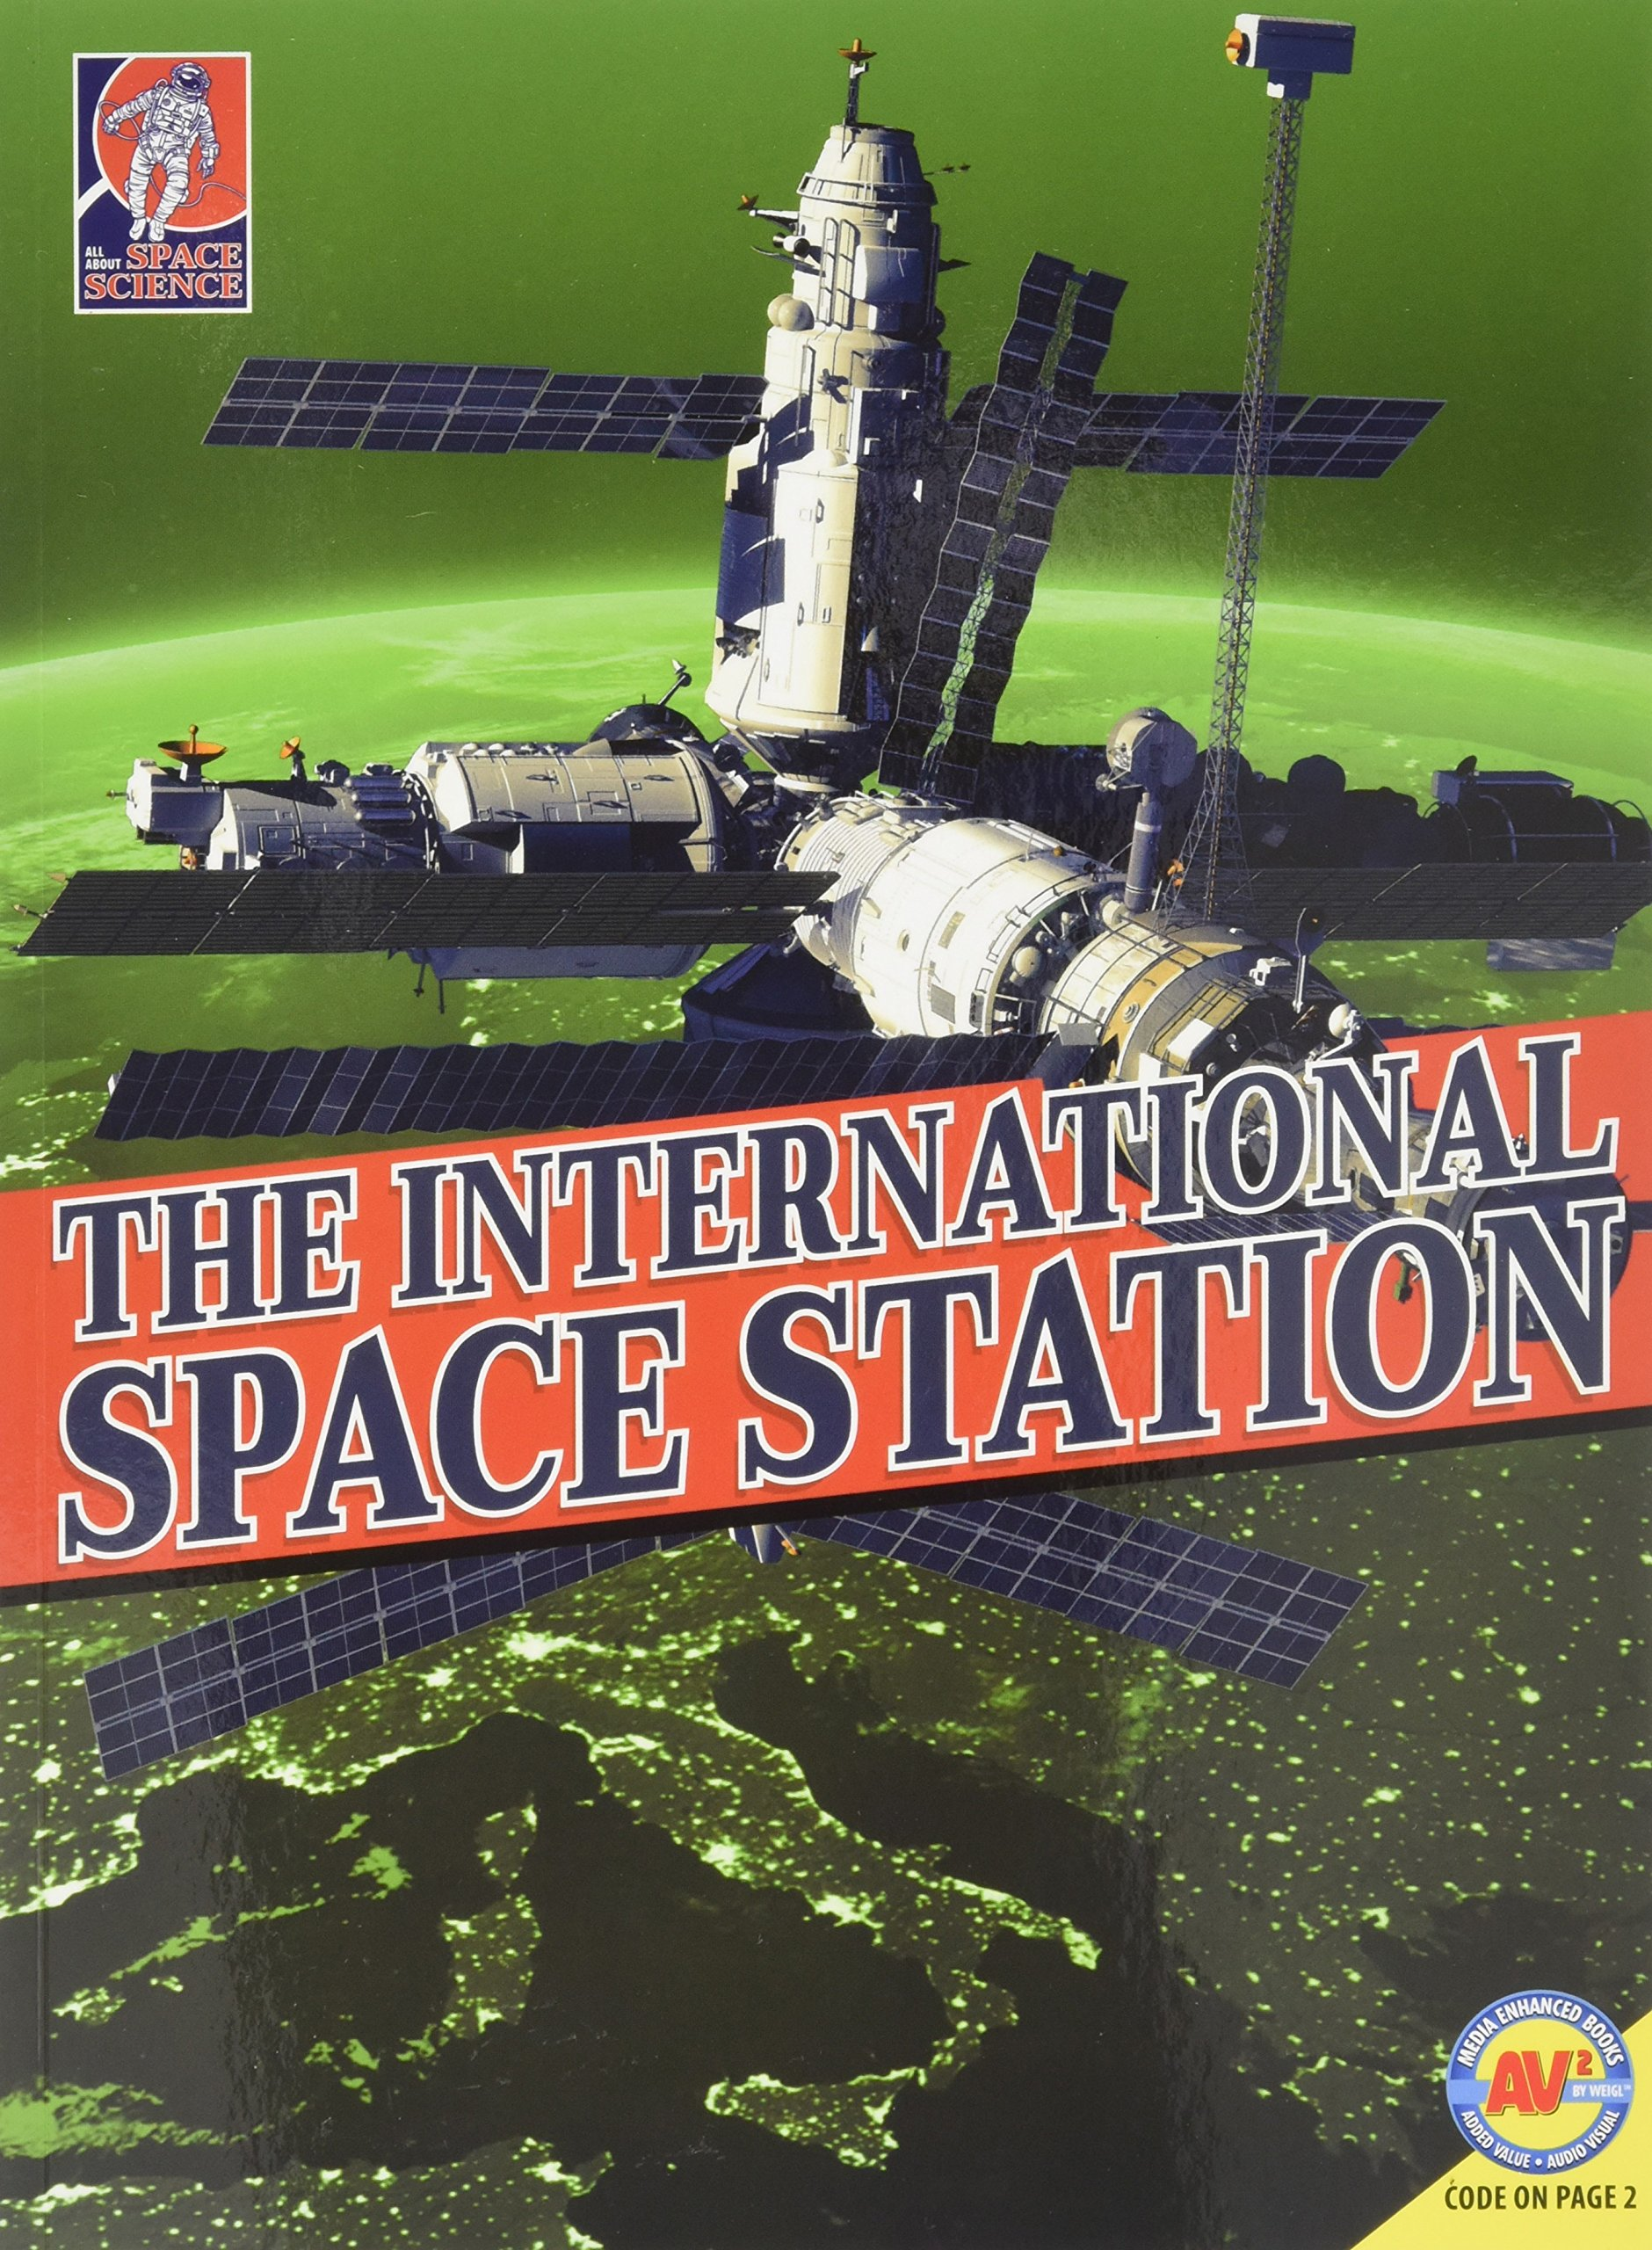 The international space station all about space science david the international space station all about space science david baker 9781489658258 amazon books fandeluxe Images